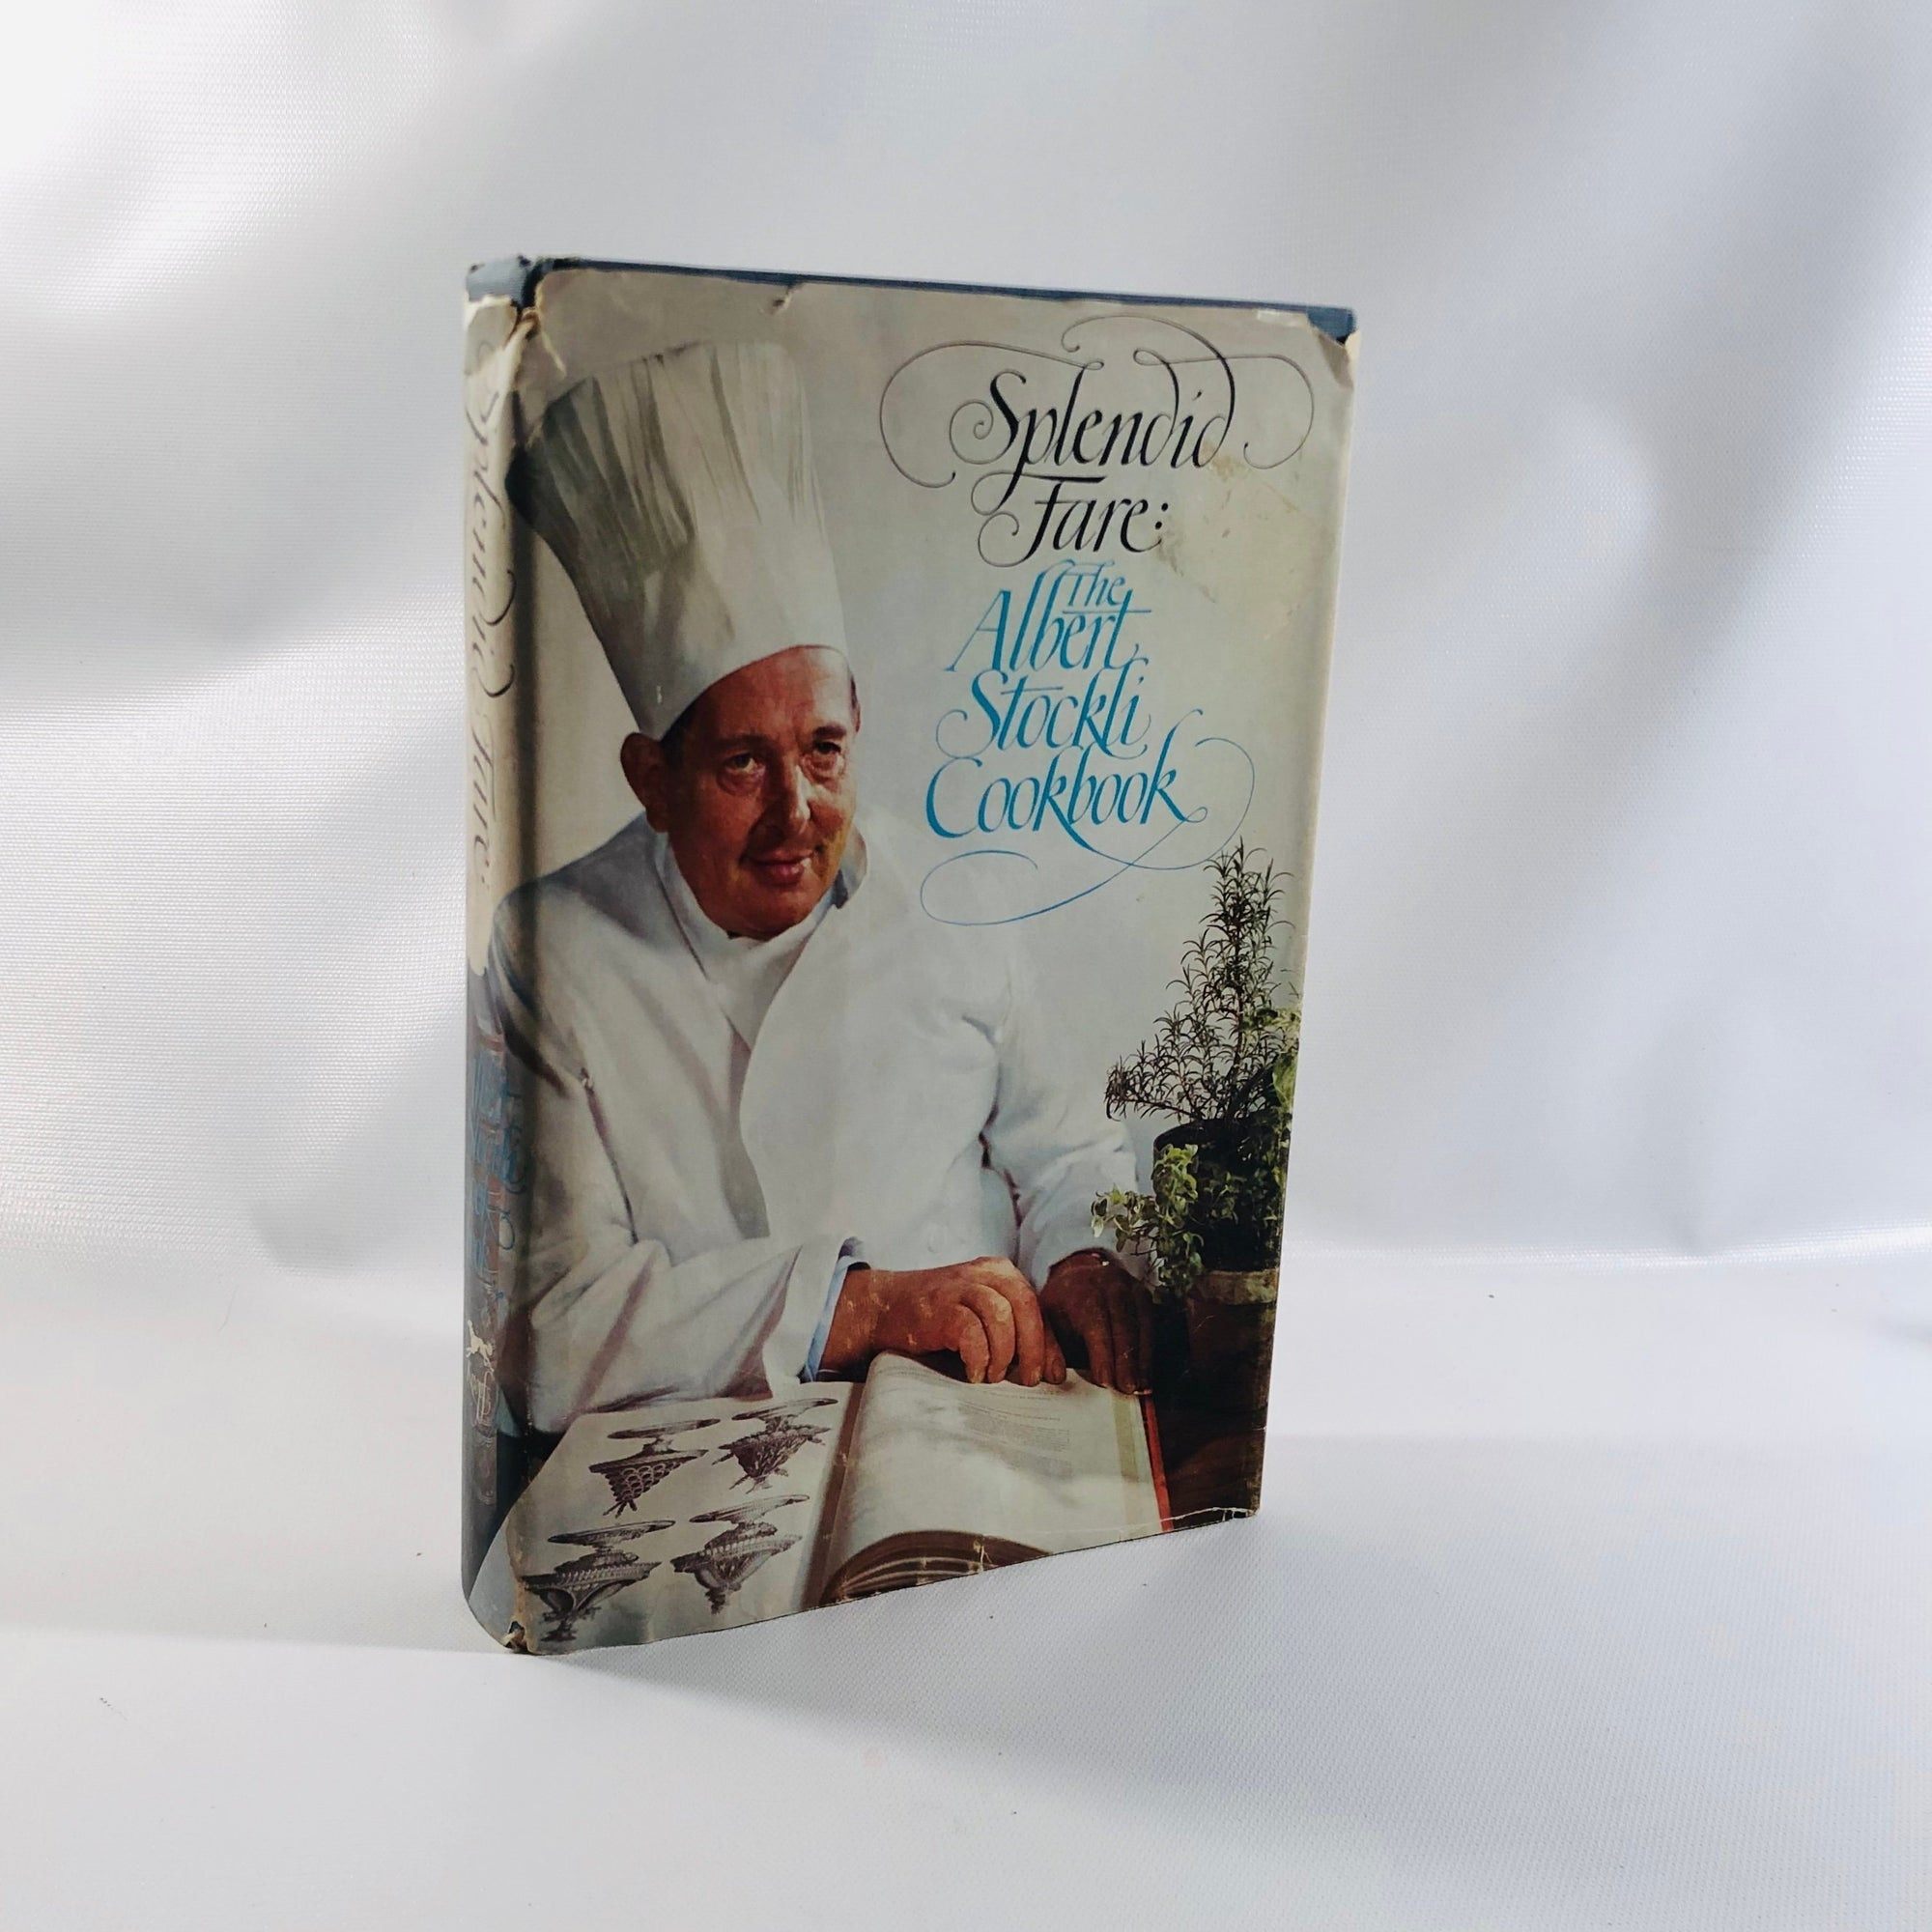 Splendid Fare: The Albert Stockli Cookbook Drawings by Bill Goldsmith 1970